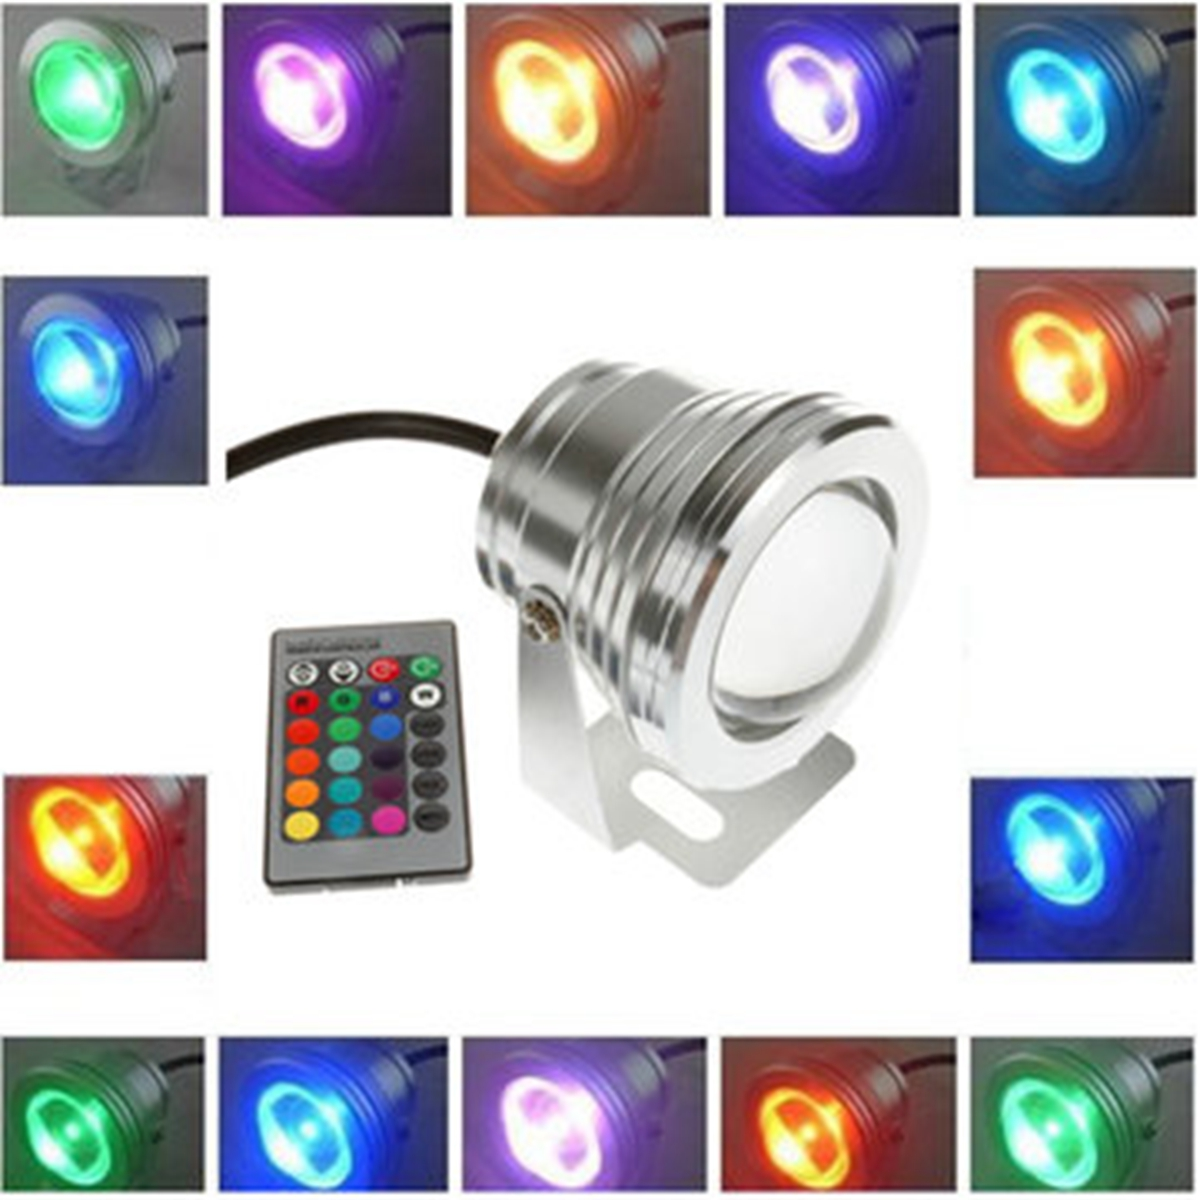 10W DC12V RGB LED Underwater Lamp Waterproof Swimming Pool Pond Fish fountain Aquarium LED Light Lamp With Remote Controller